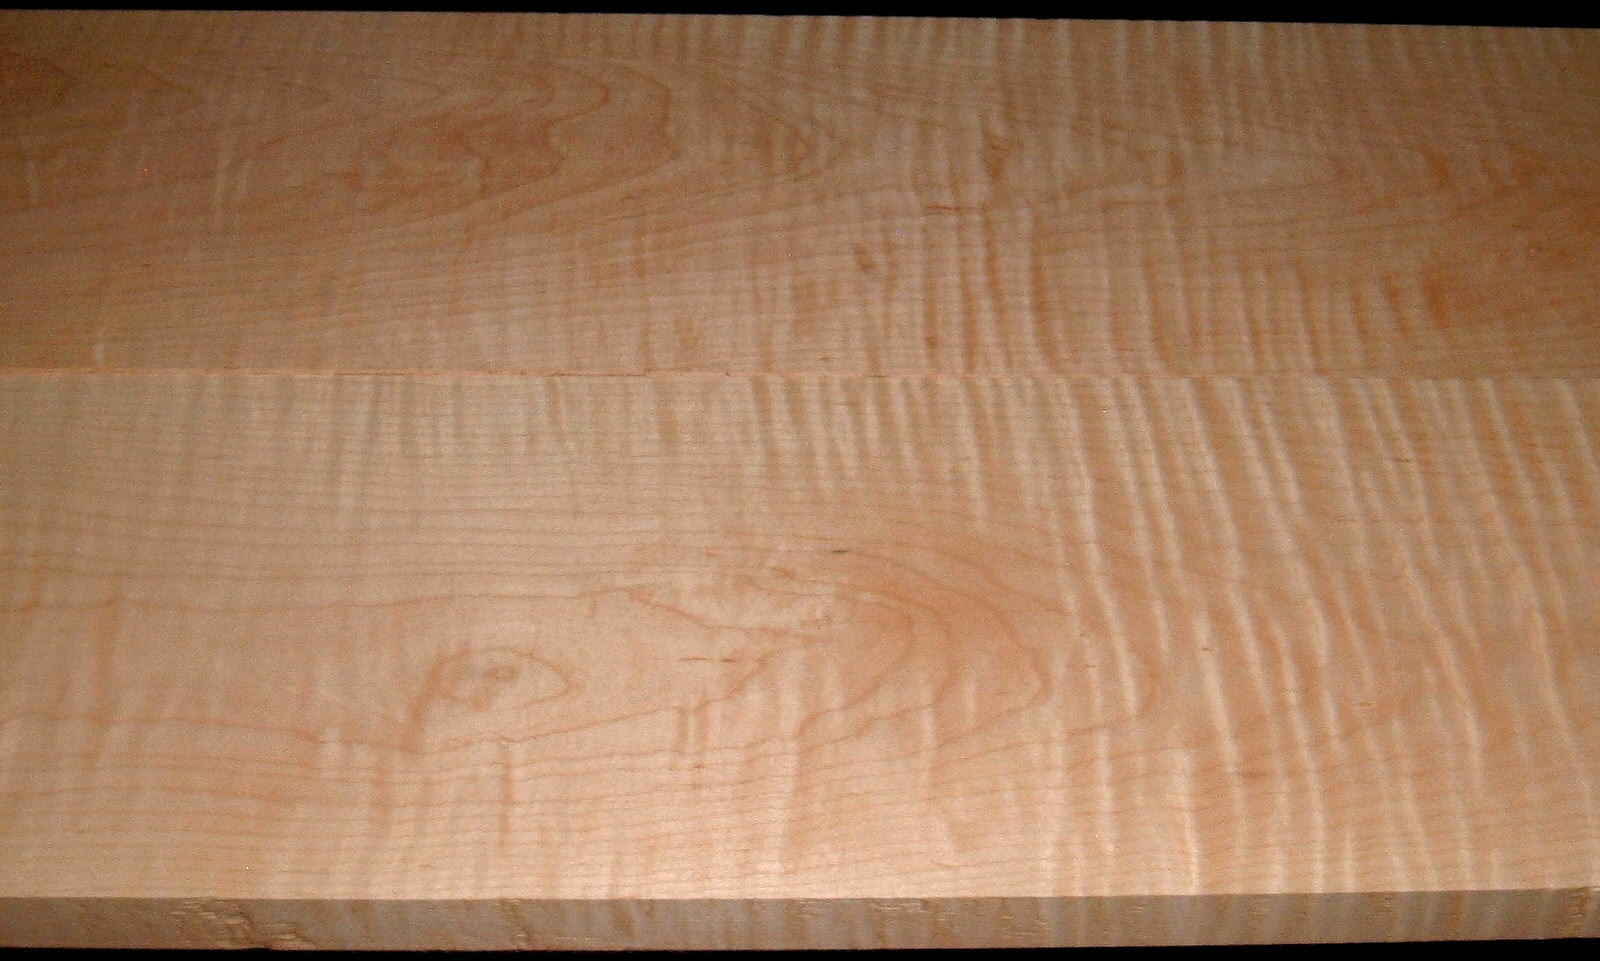 M2007-575,2 Bd Set, 1-1/8x8-3/8x55,1-1/8x8-3/8x55, Curly Tiger Maple